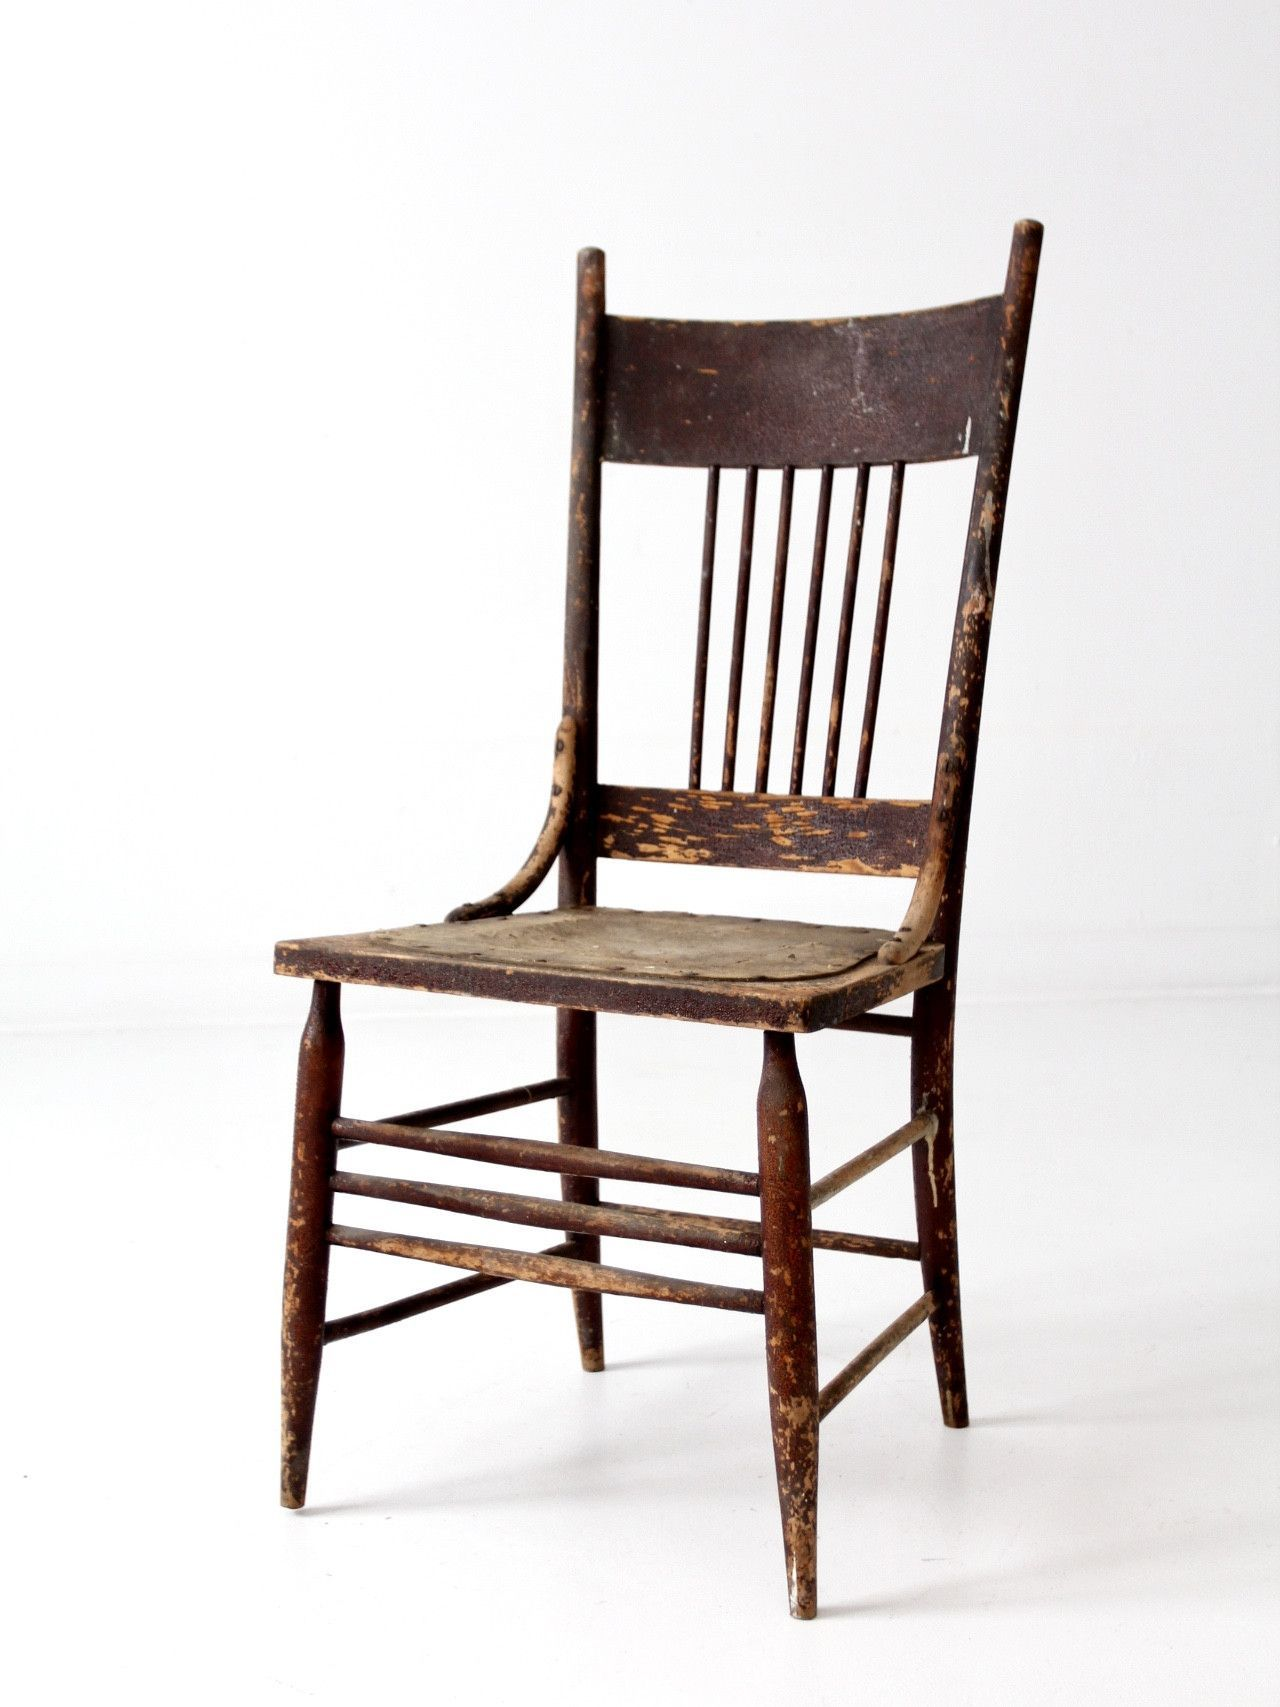 antique spindle back chair with pressed leather seat - Antique Spindle Back Chair With Pressed Leather Seat Chairs In